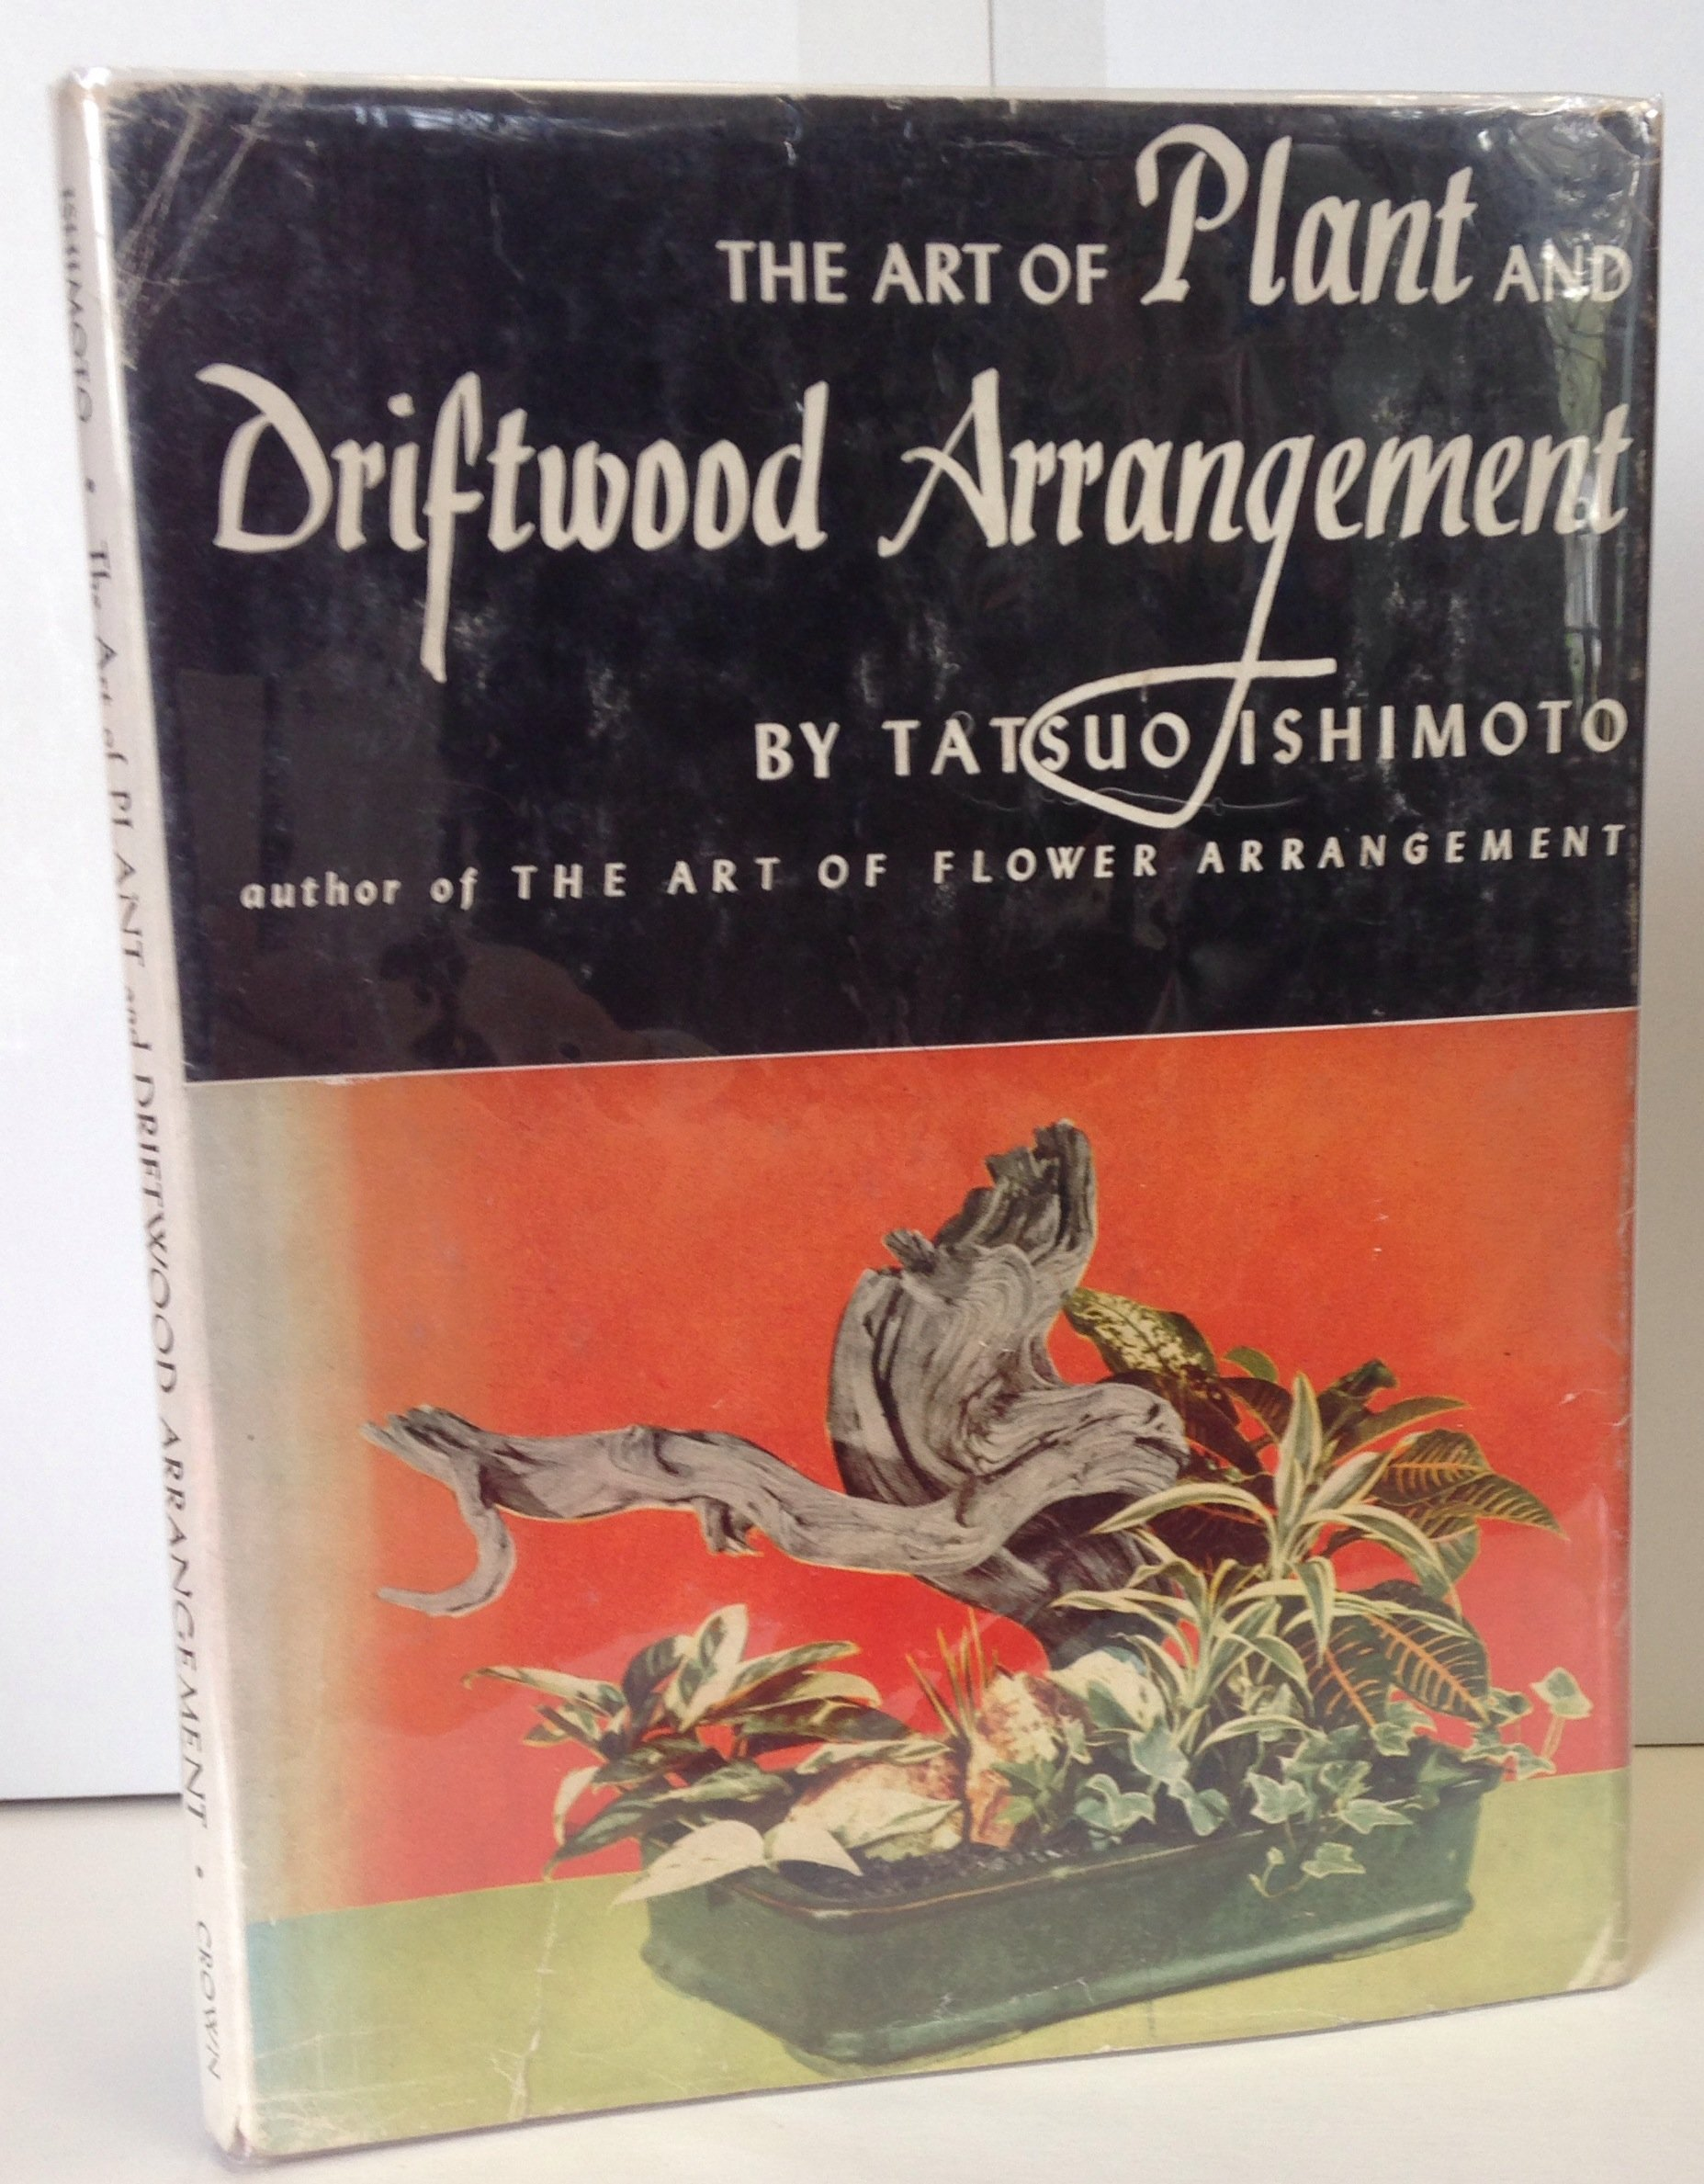 The Art of Plant and Driftwood Arangement